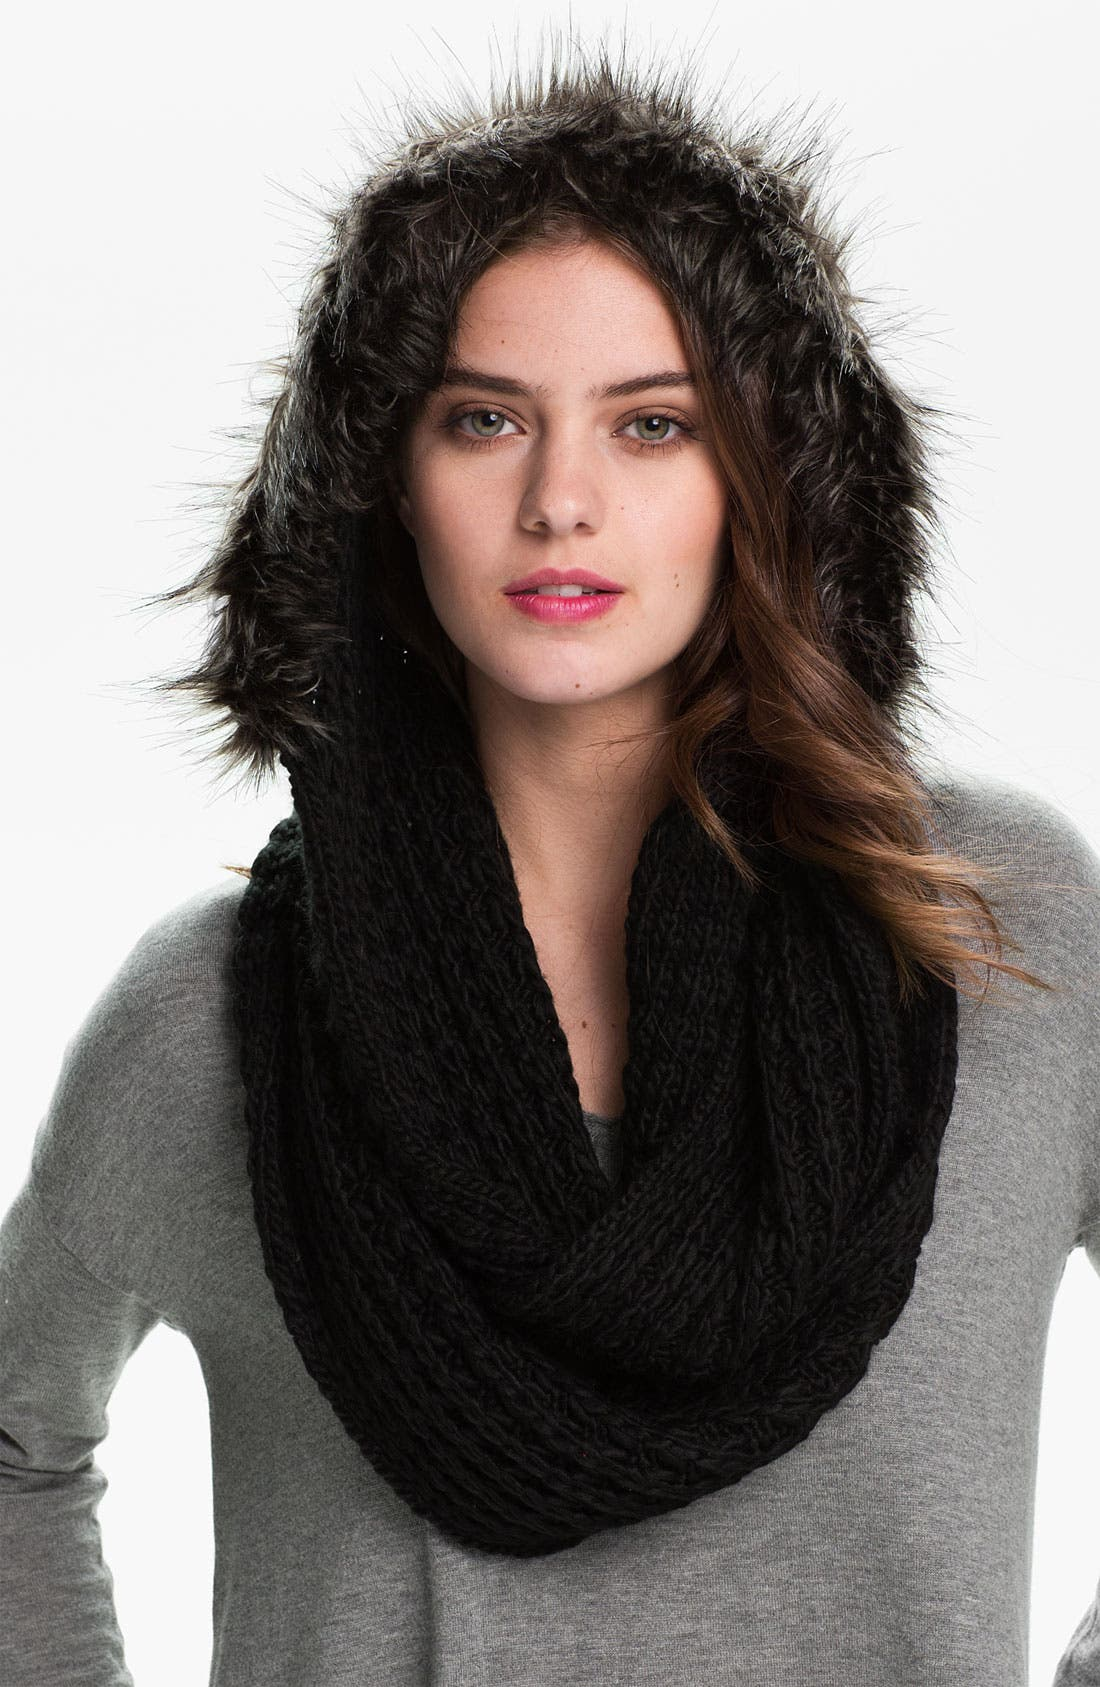 Alternate Image 1 Selected - La Fiorentina Hooded Infinity Scarf